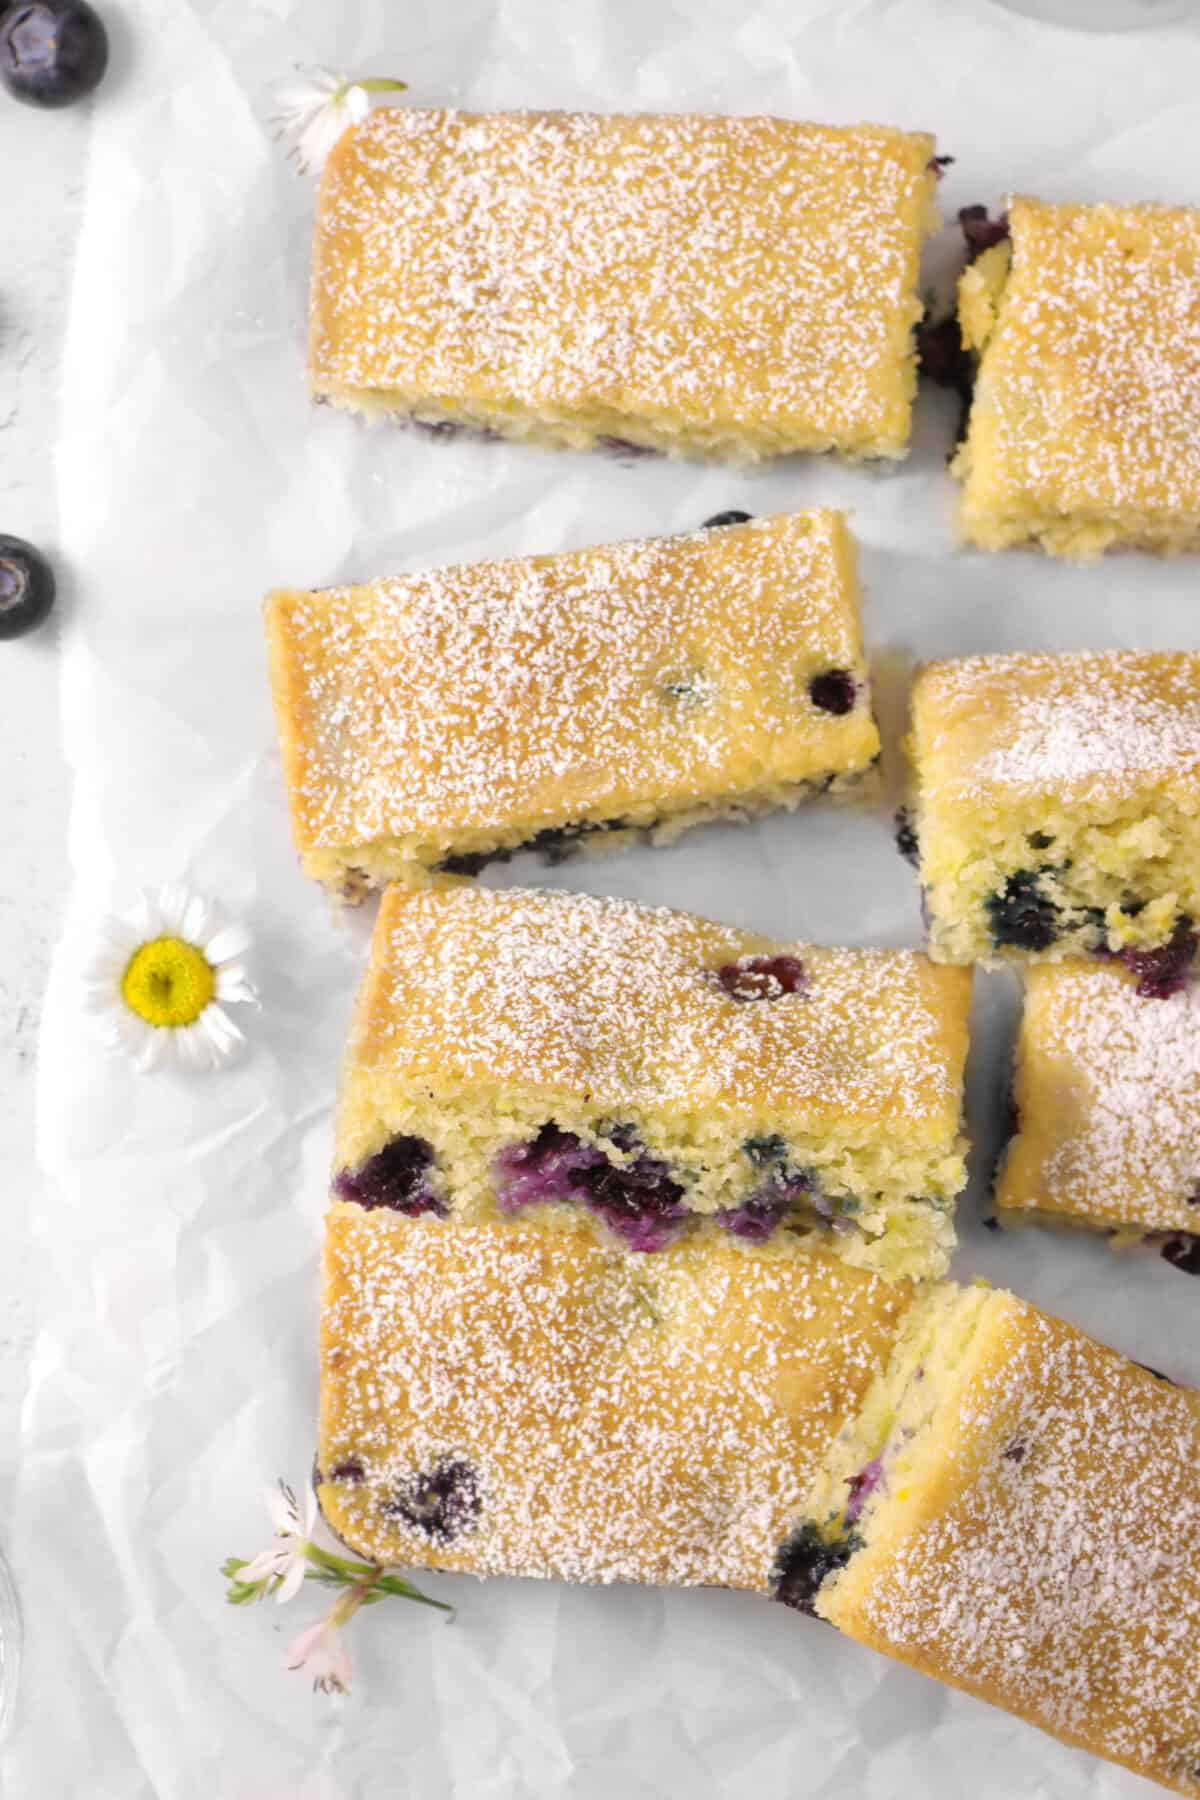 snack cake on parchment paper with powdered sugar, flowers, and blueberries